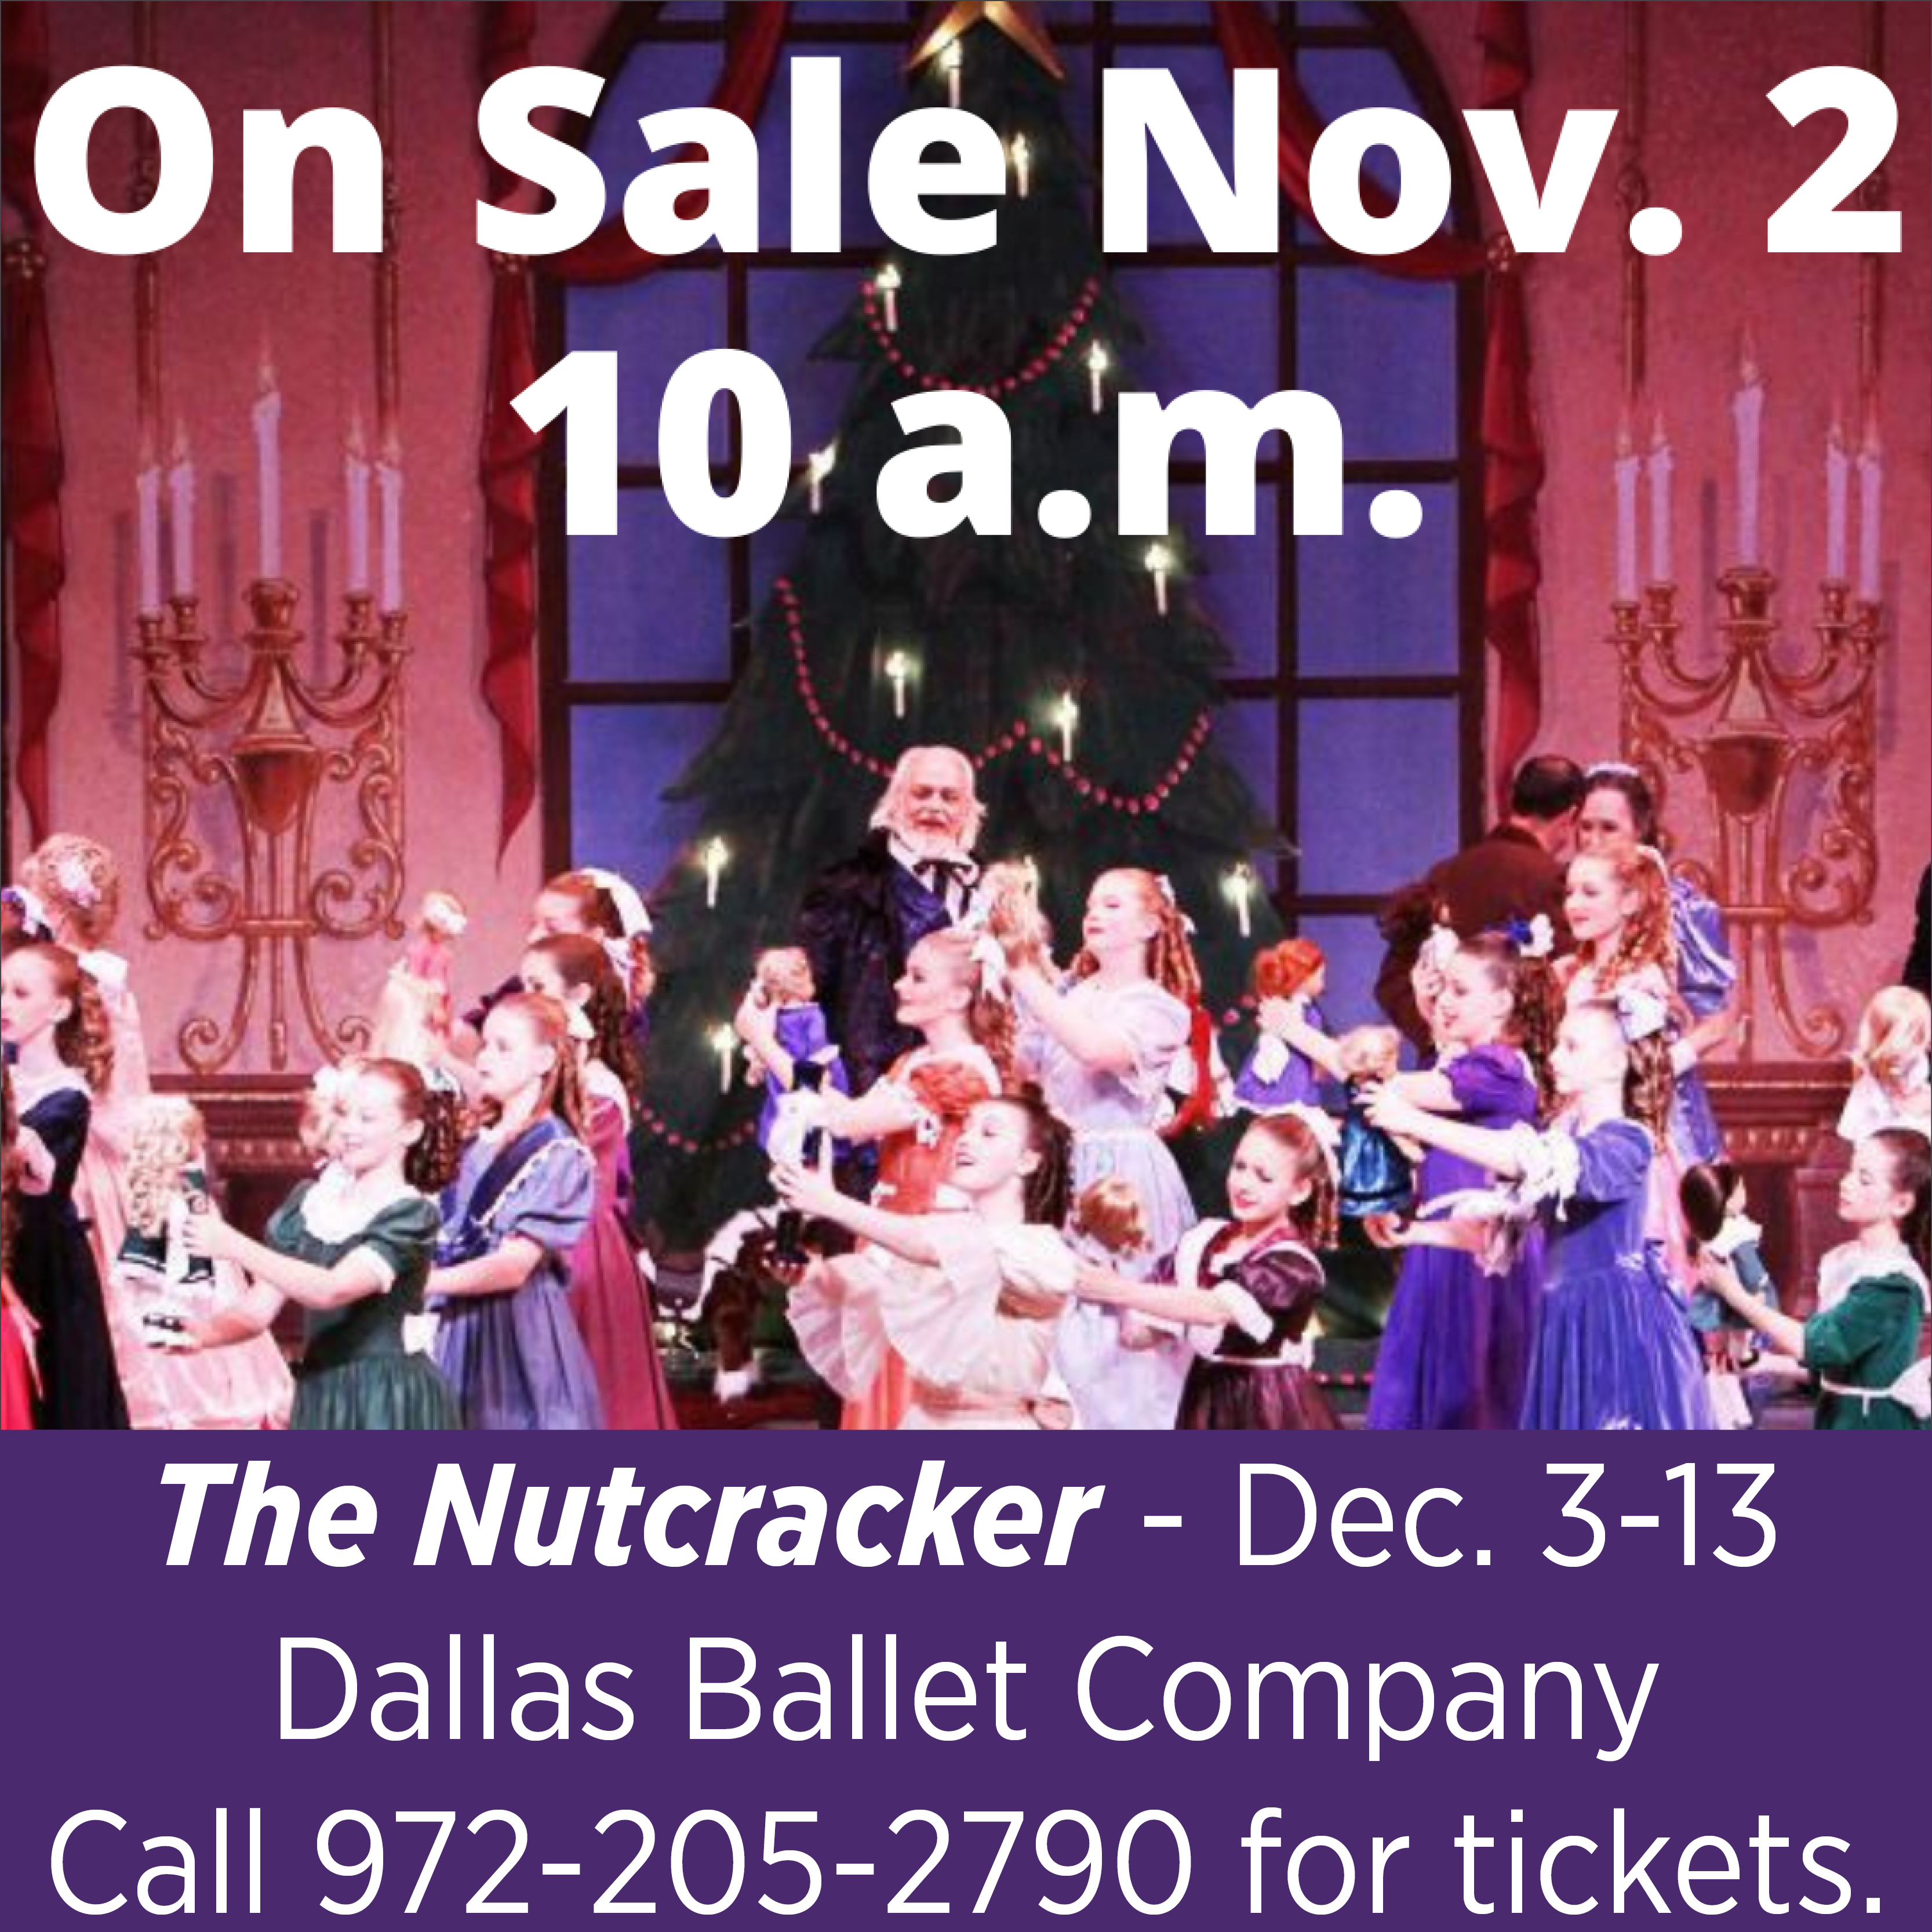 """The Nutcracker"" - Dec. 3-13 - Call 972-205-2790 for tickets."